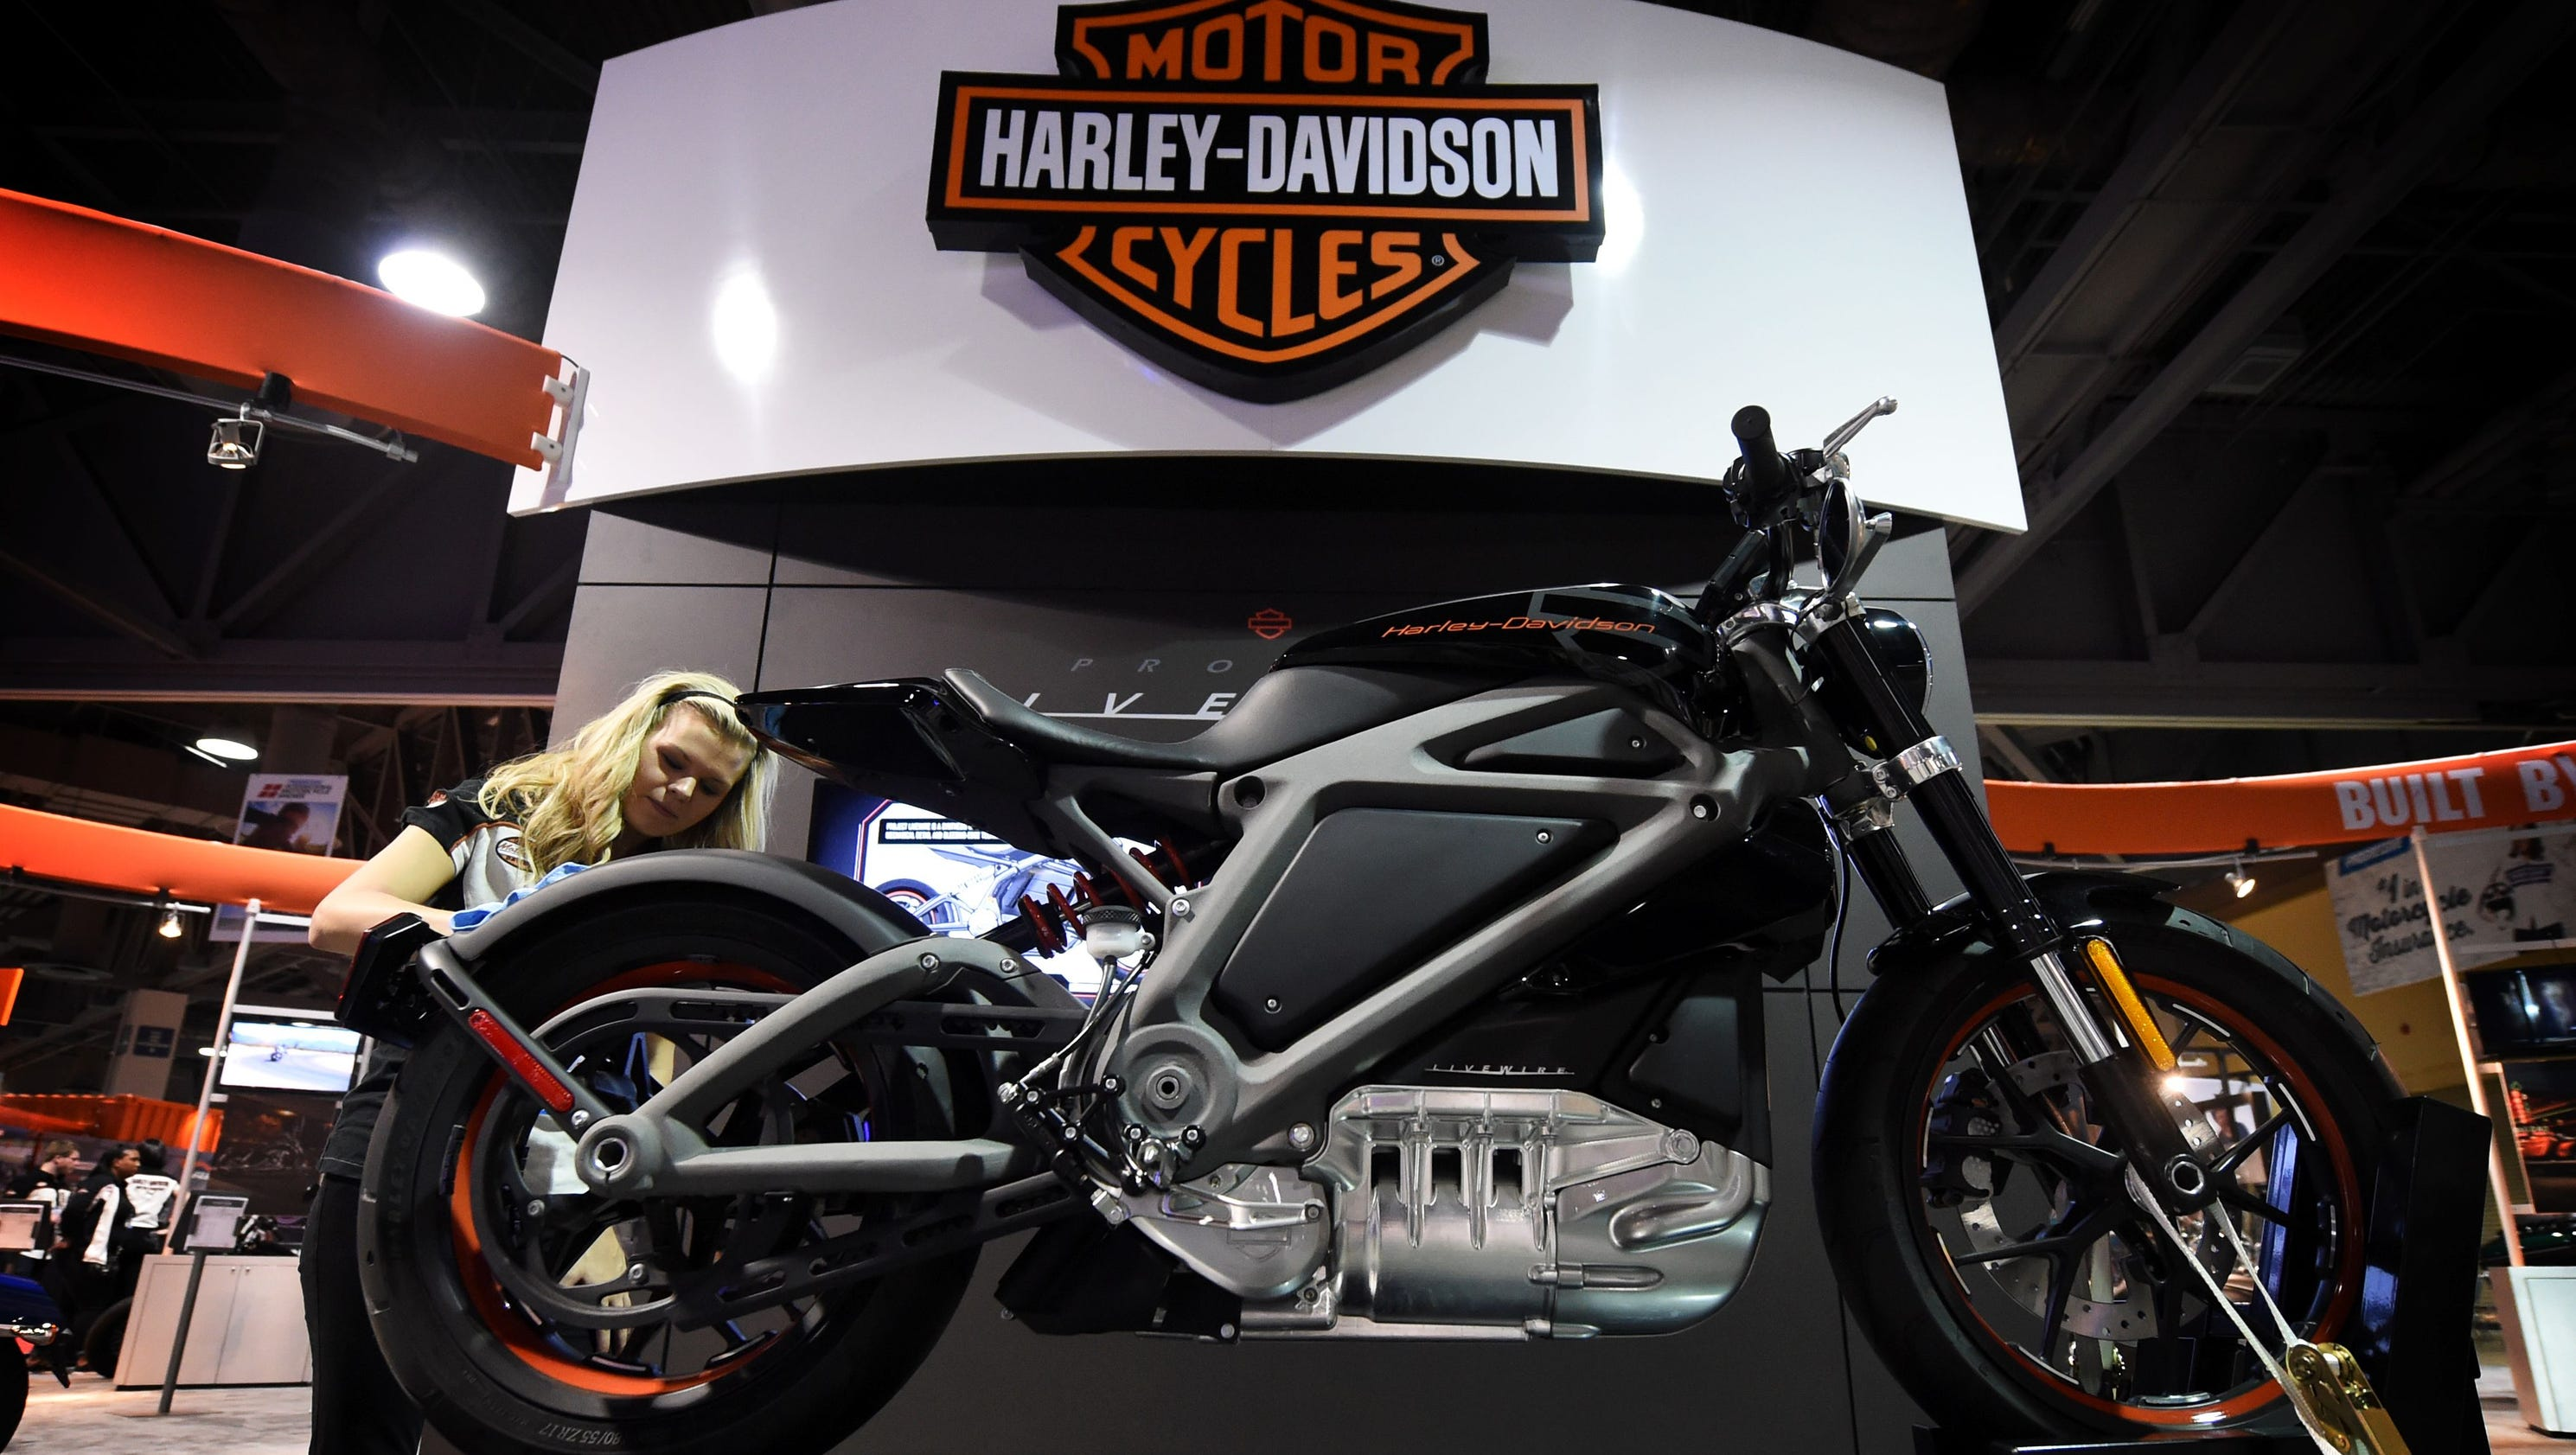 a harley davidson motor company declaration and business model 2015 harley davidson road king owner manual harley davidson usa, official site of harley davidson motor company check out current harley motorcycles, locate a dealer, & browse motorcycle parts and apparel.